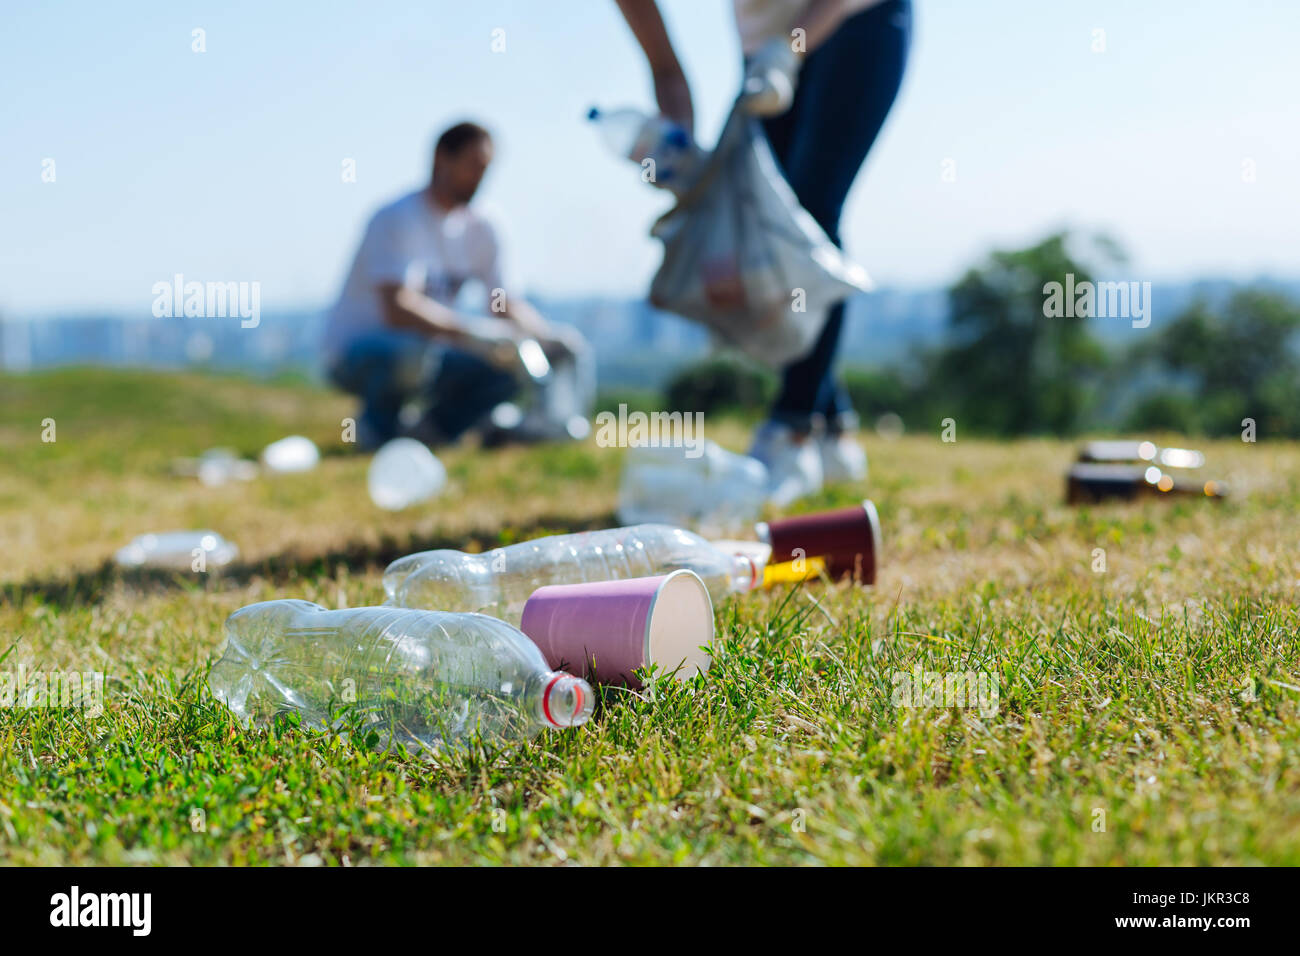 Devoted energetic people collecting litter on a grass - Stock Image